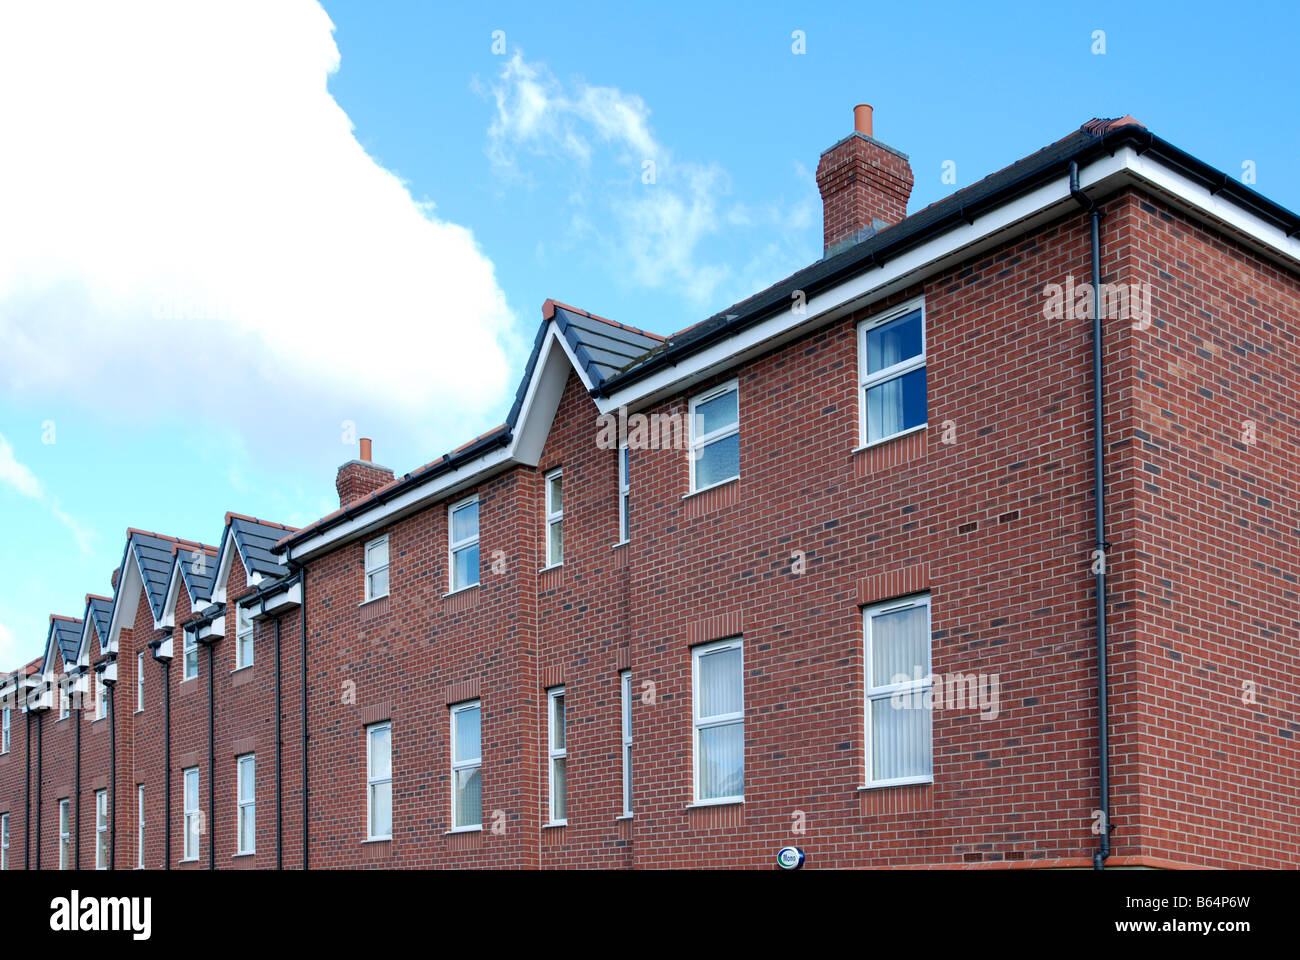 new affordable housing project in leeds,yorkshire,uk - Stock Image